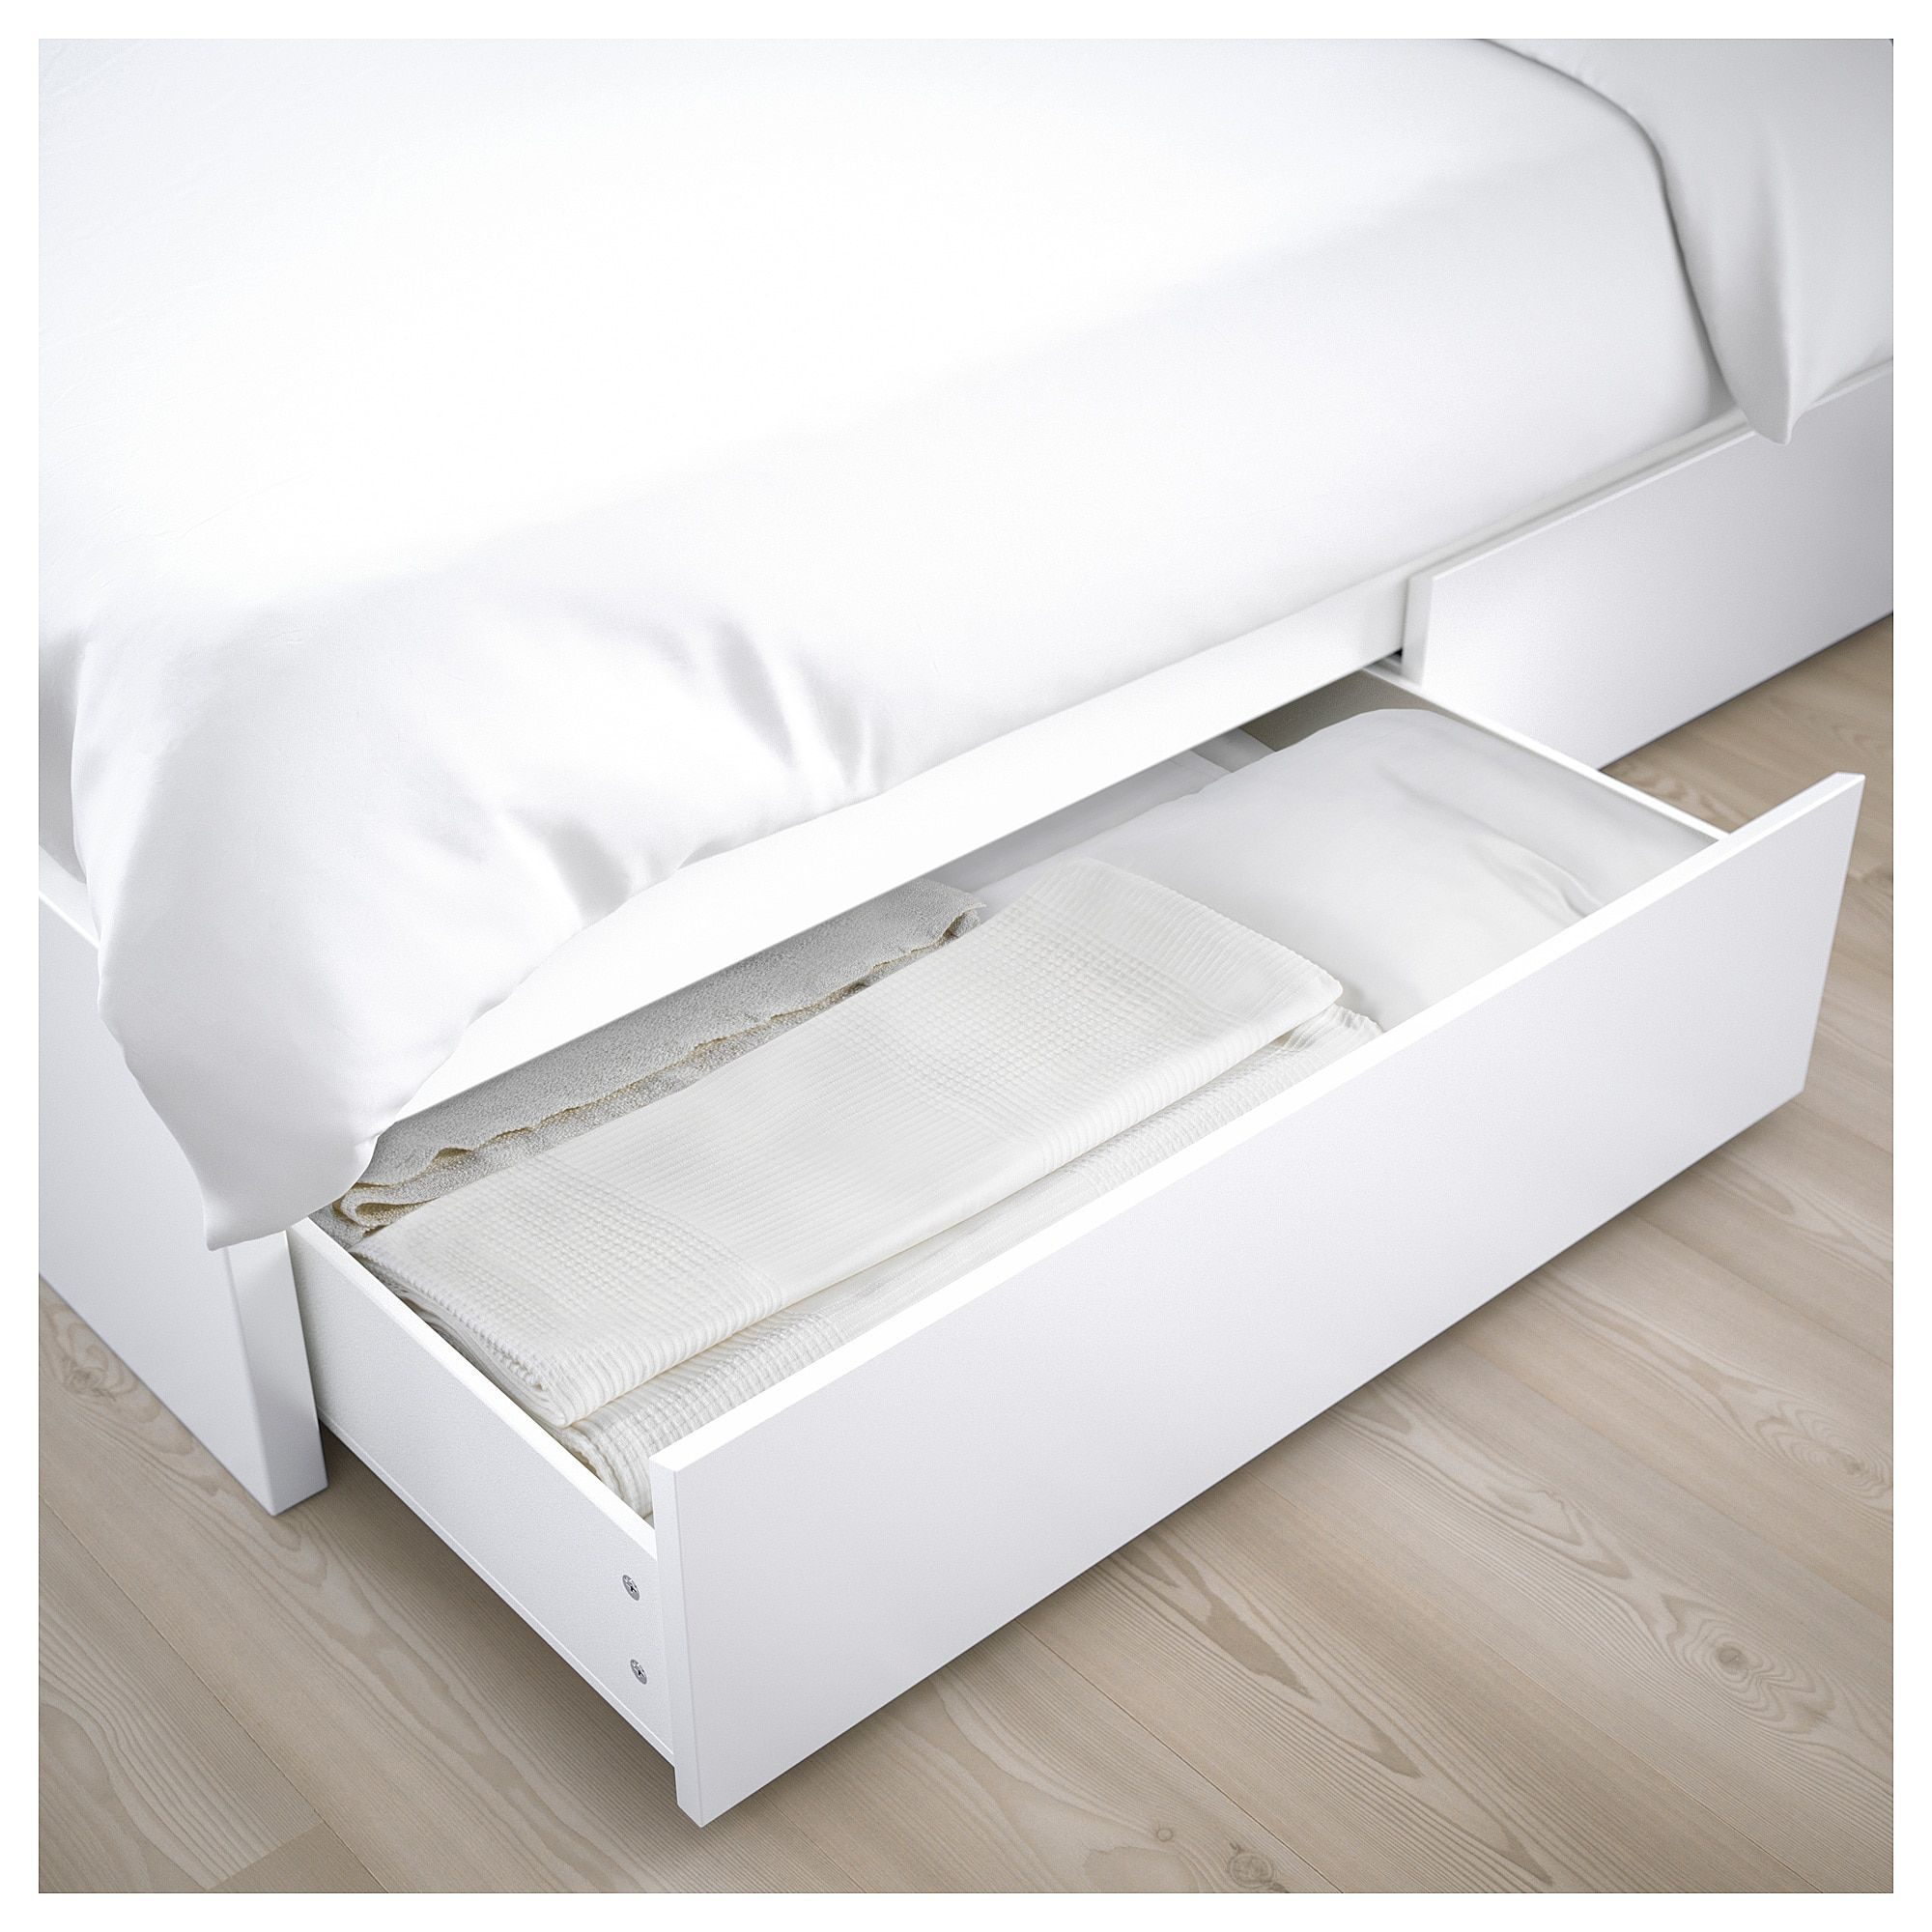 Dekenlade Ikea Ikea Malm High Bed Frame 4 Storage Boxes White Lönset In 2019